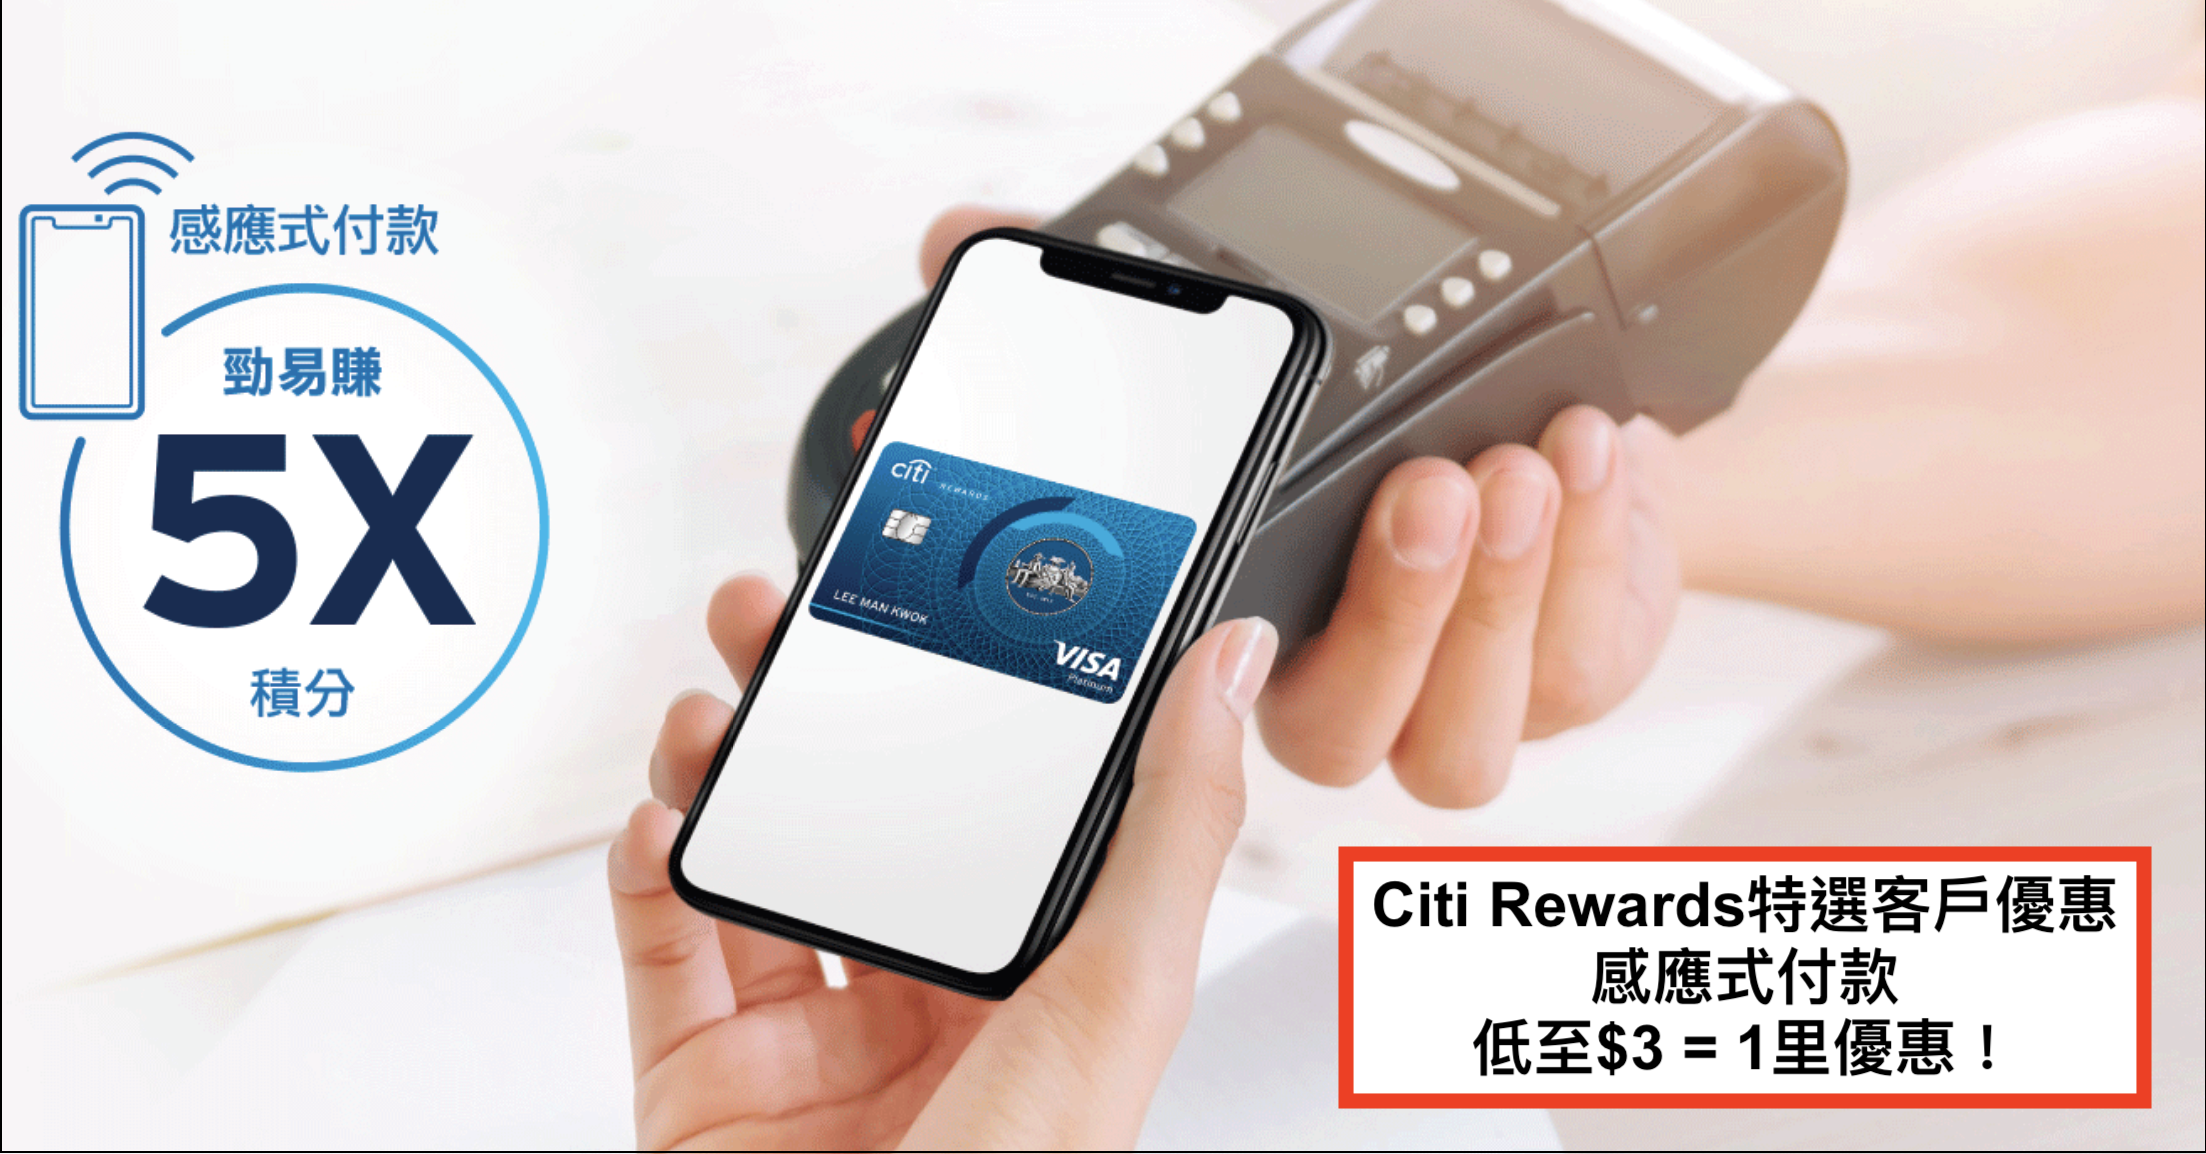 Citi Rewards特選客戶優惠!感應式付款 (即Apple Pay, Google Pay, Samsung Pay, payWave及Paypass) 低至$3 = 1里優惠!